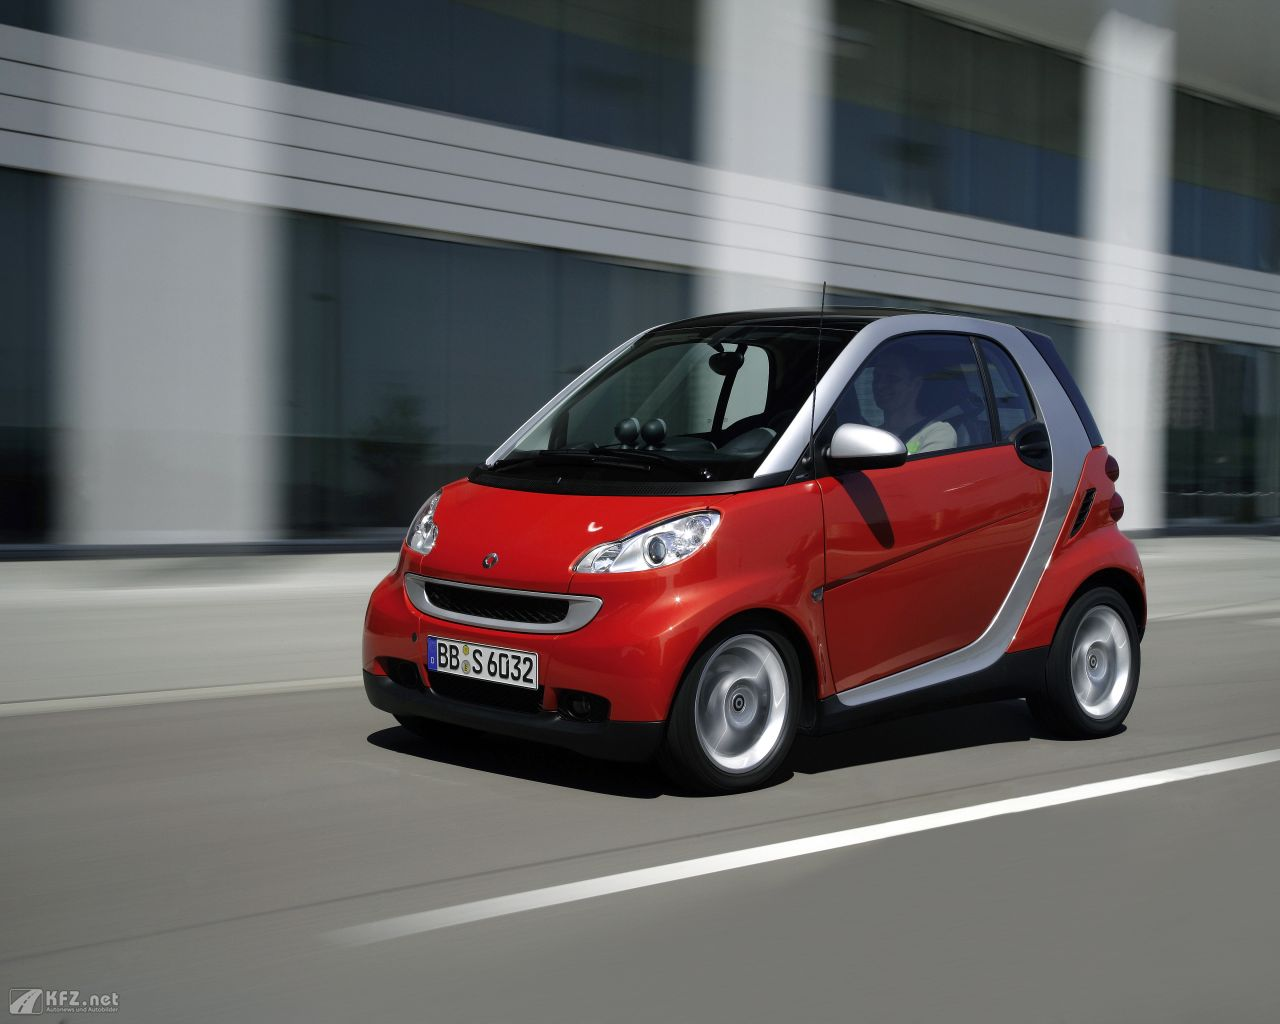 smart-fortwo-1280x1024-1